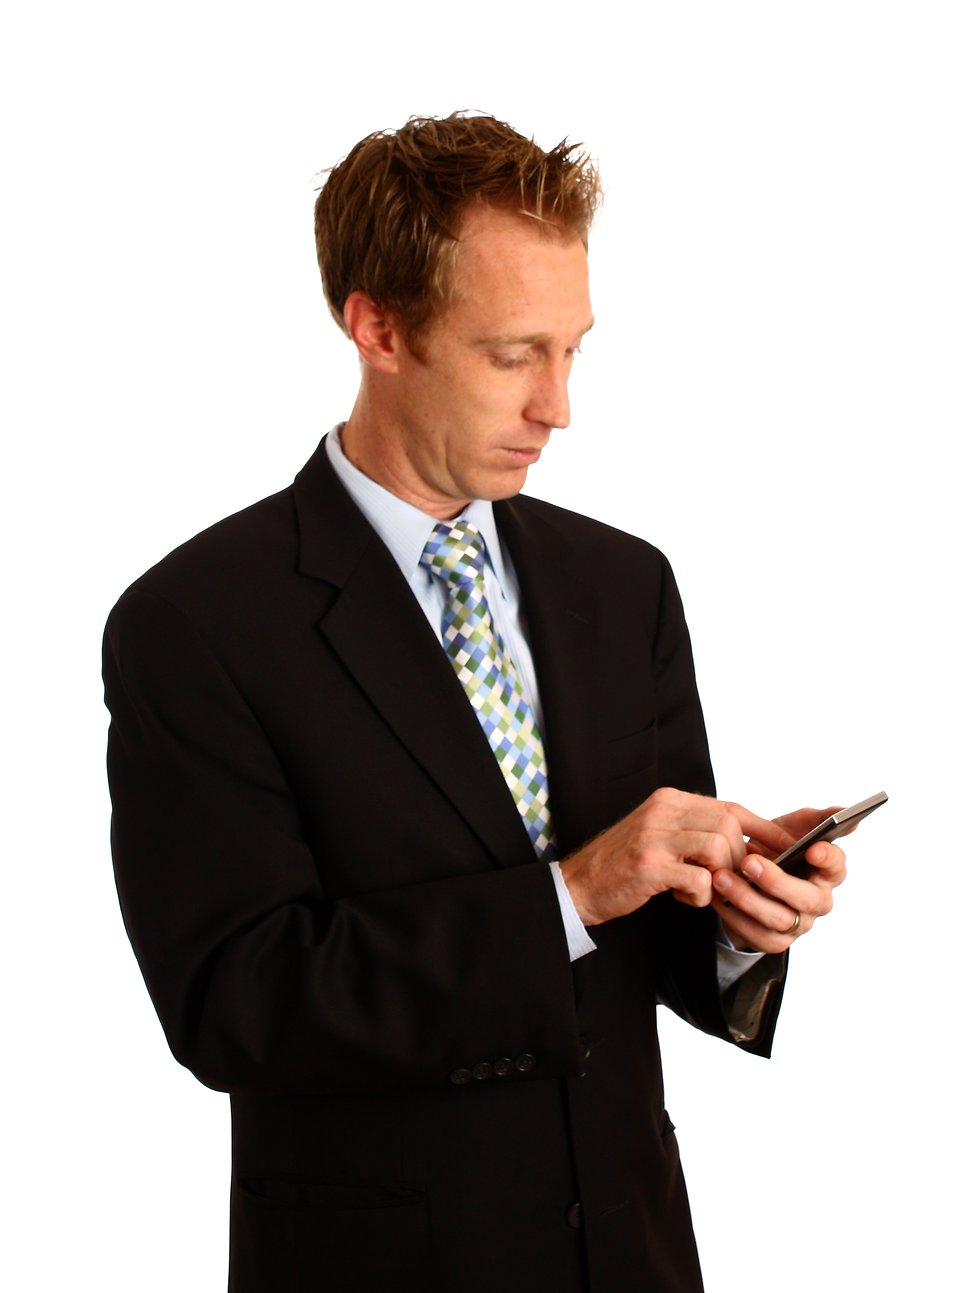 A young businessman in a suit using a calculator : Free Stock Photo